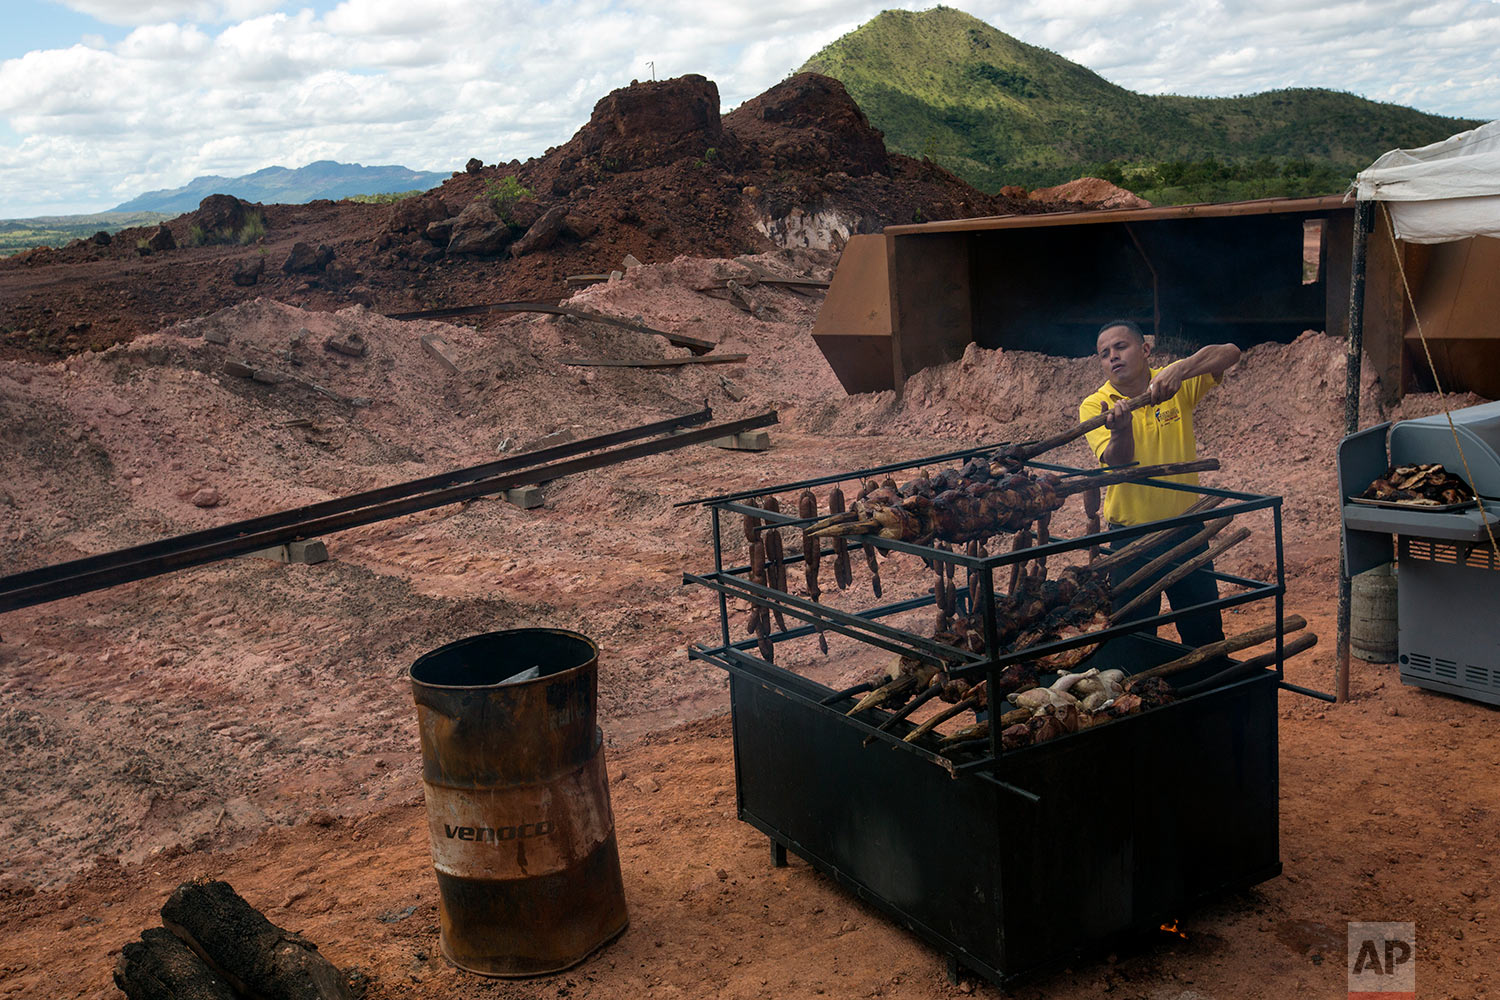 In this Nov. 2, 2017 photo, a Ferrominera Orinoco worker cooks sausages, pork and chicken to celebrate the completion of repairs on a set of damaged railroad tracks, in Ciudad Piar, Bolivar state, Venezuela. Some of the twisted rails and derailed train cars that used to carry iron ore can be seen in the background. (AP Photo/Rodrigo Abd)